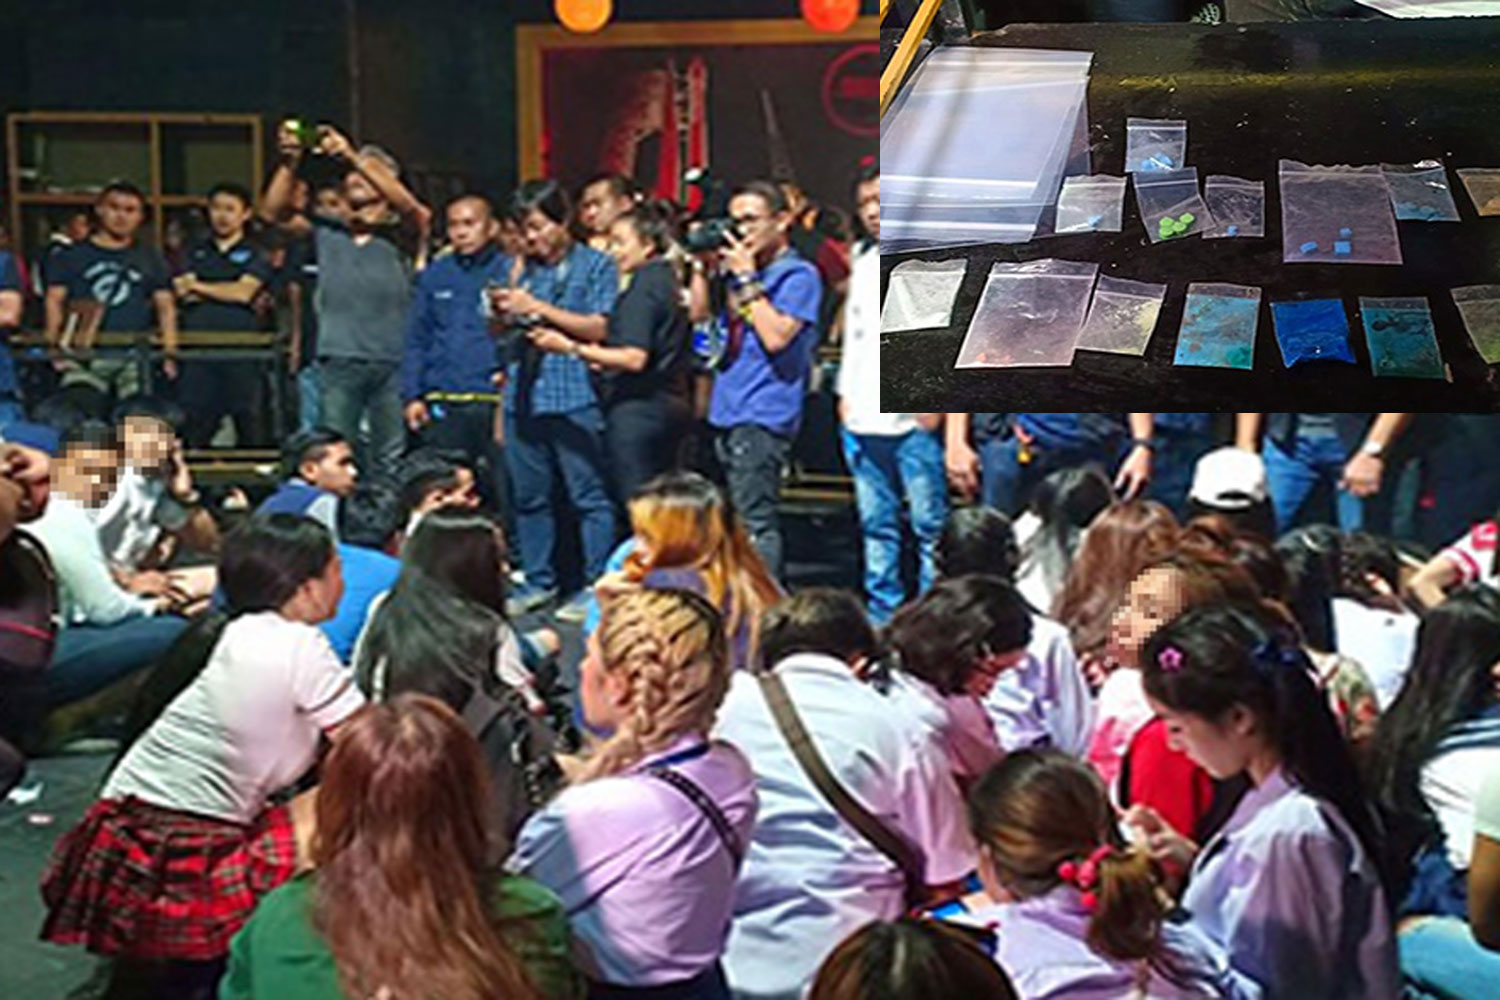 More than 200 customers, many wearing student uniforms, were found inside Space pub in Bang Khen district, Bangkok early Wednesday. 120 of them tested positive for drugs. (Photo taken from www.fm91bkk.com)